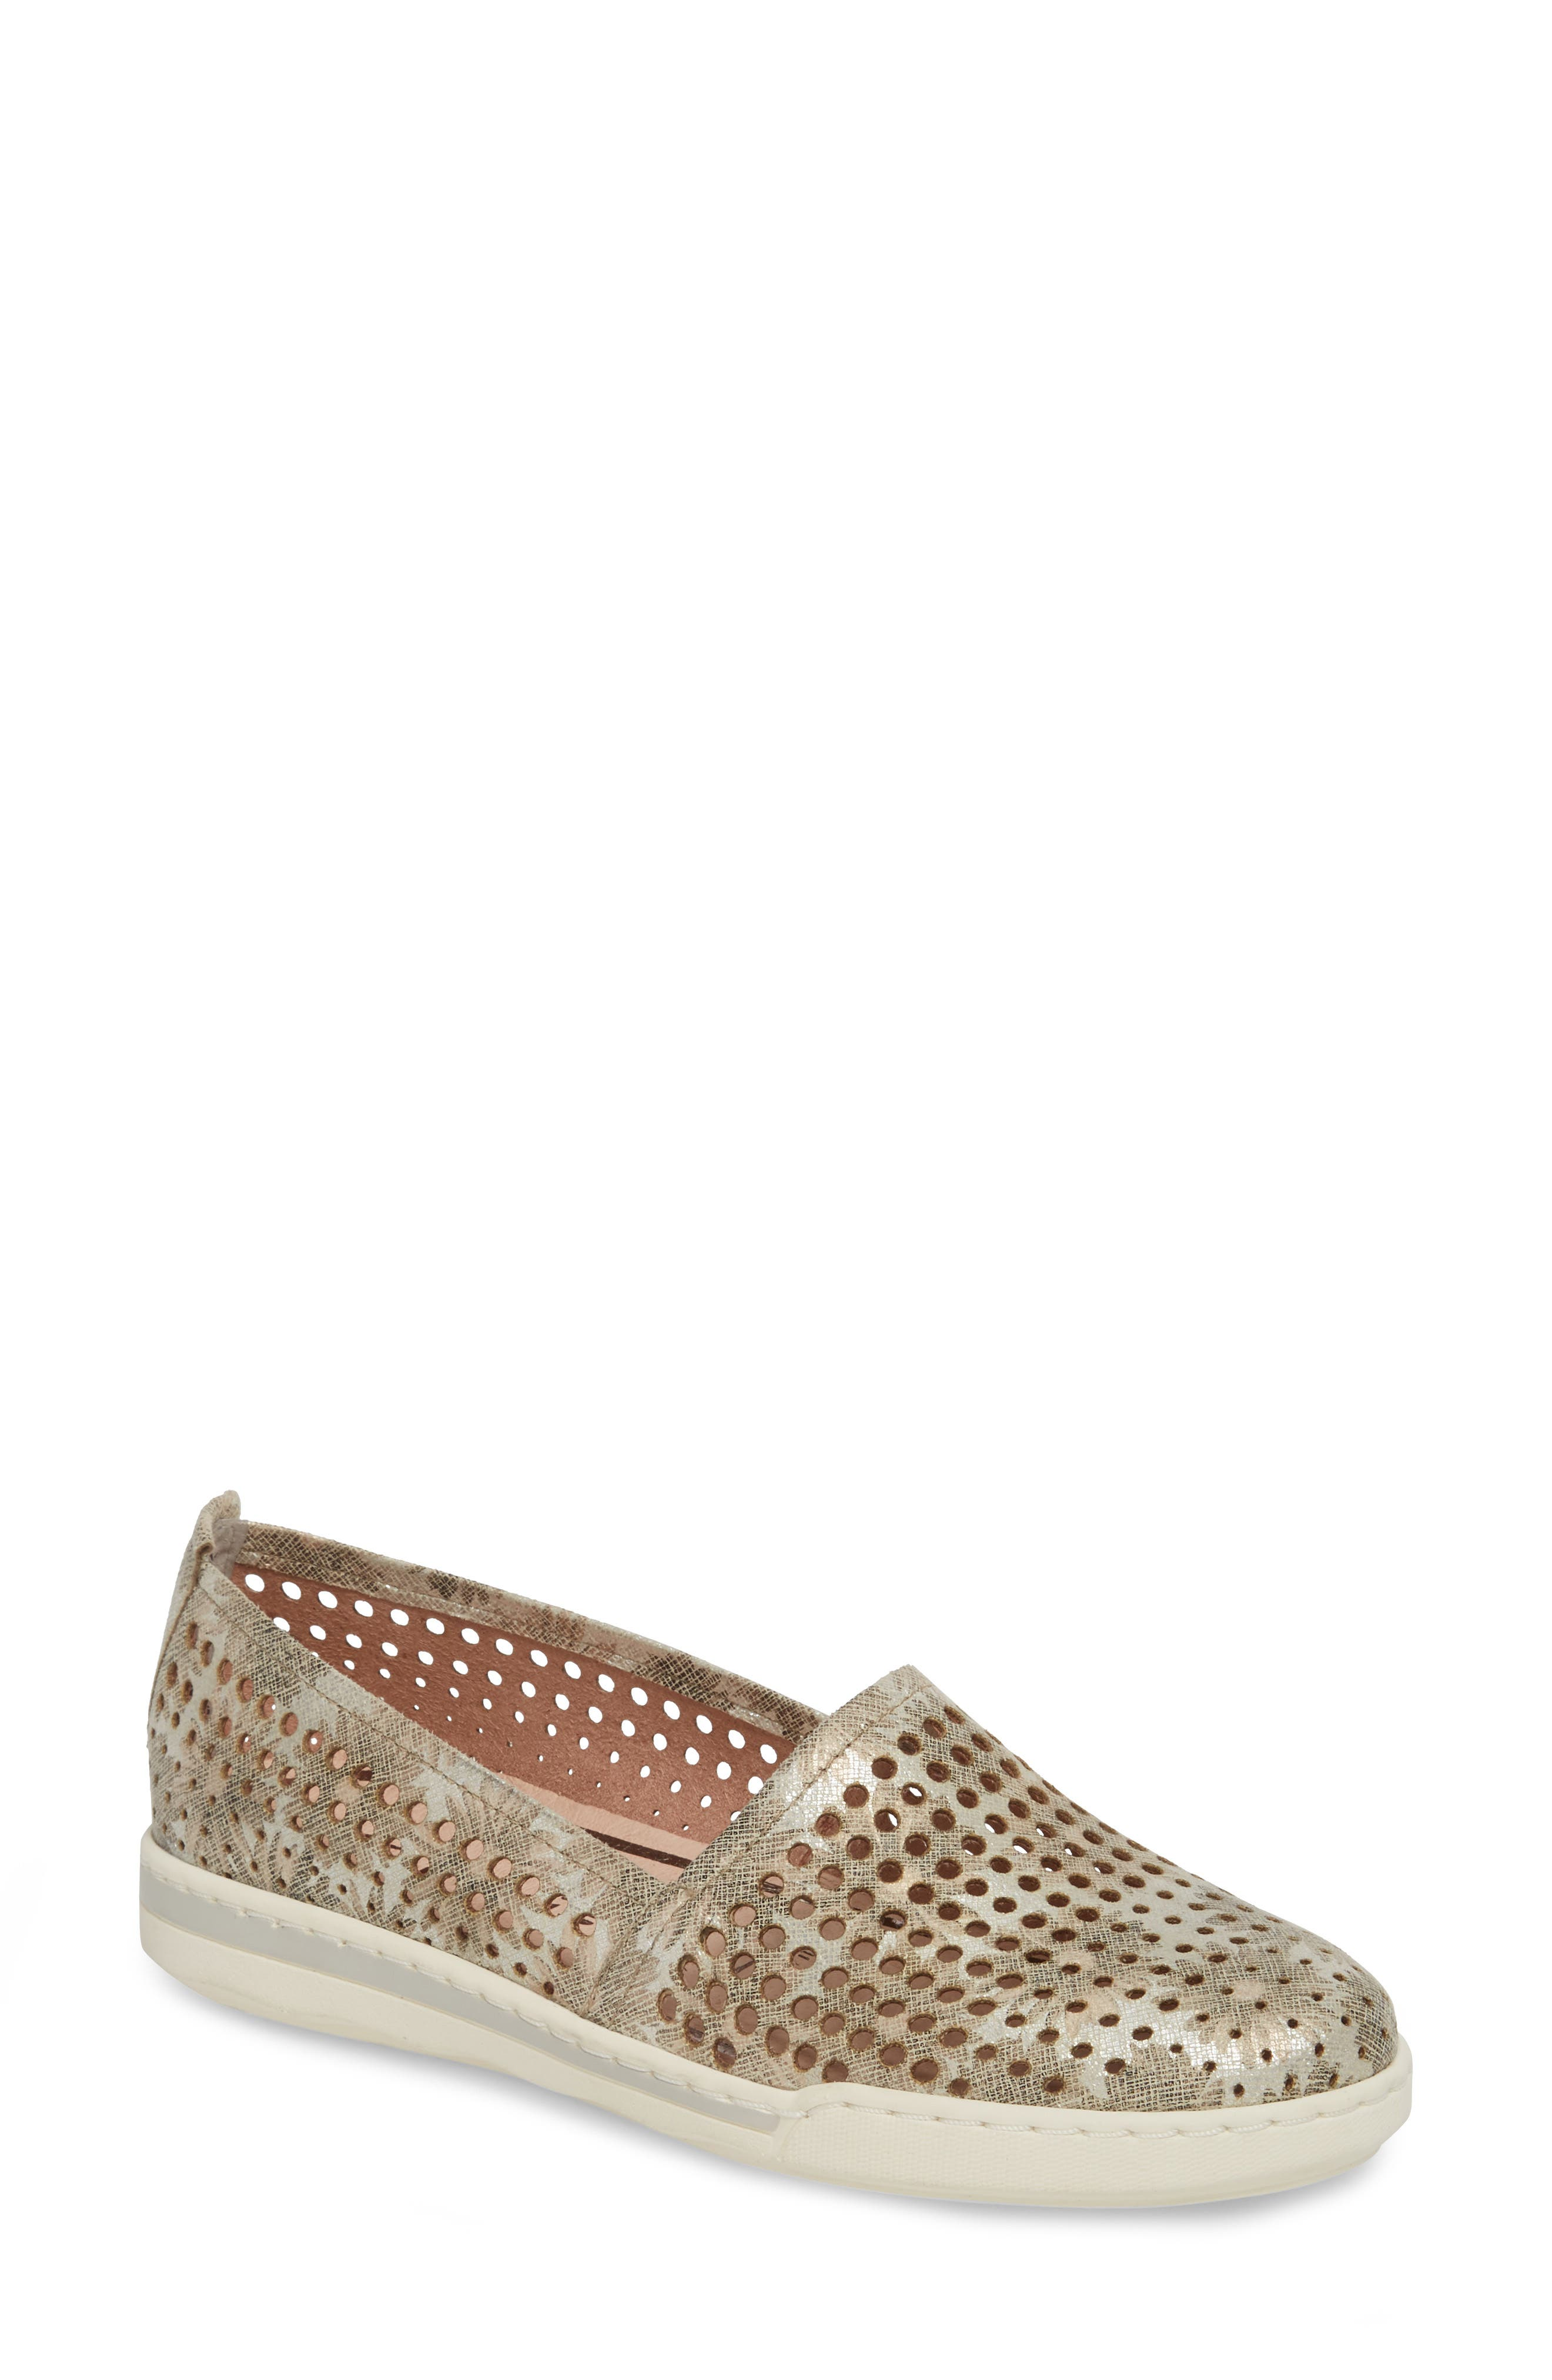 Freya Slip-On Sneaker,                         Main,                         color, TAUPE FABRIC